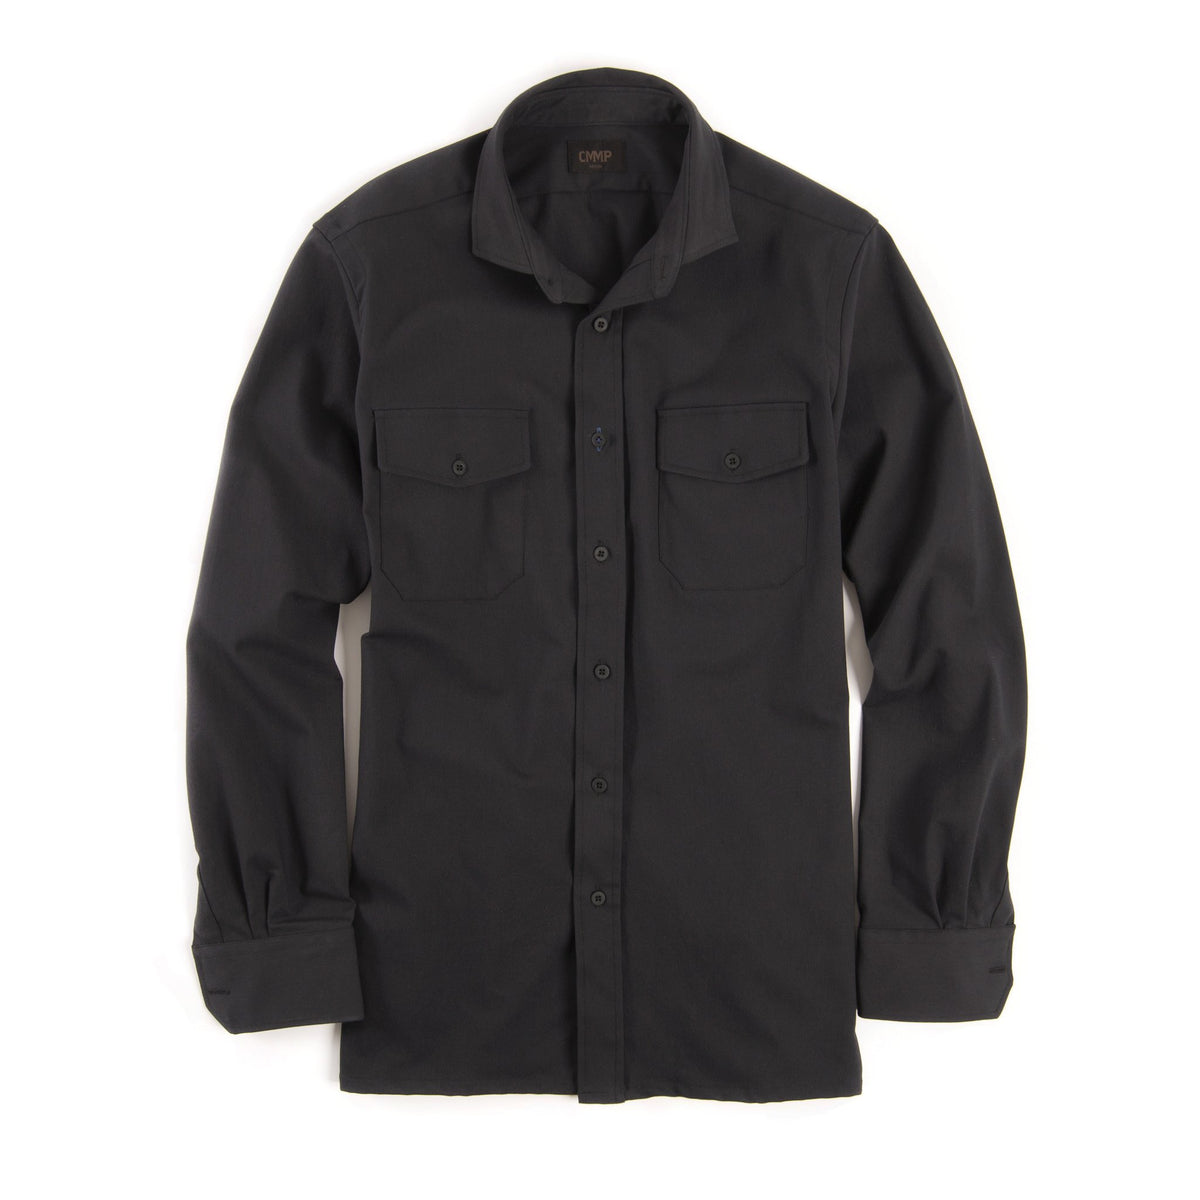 Tech Shirt Jacket